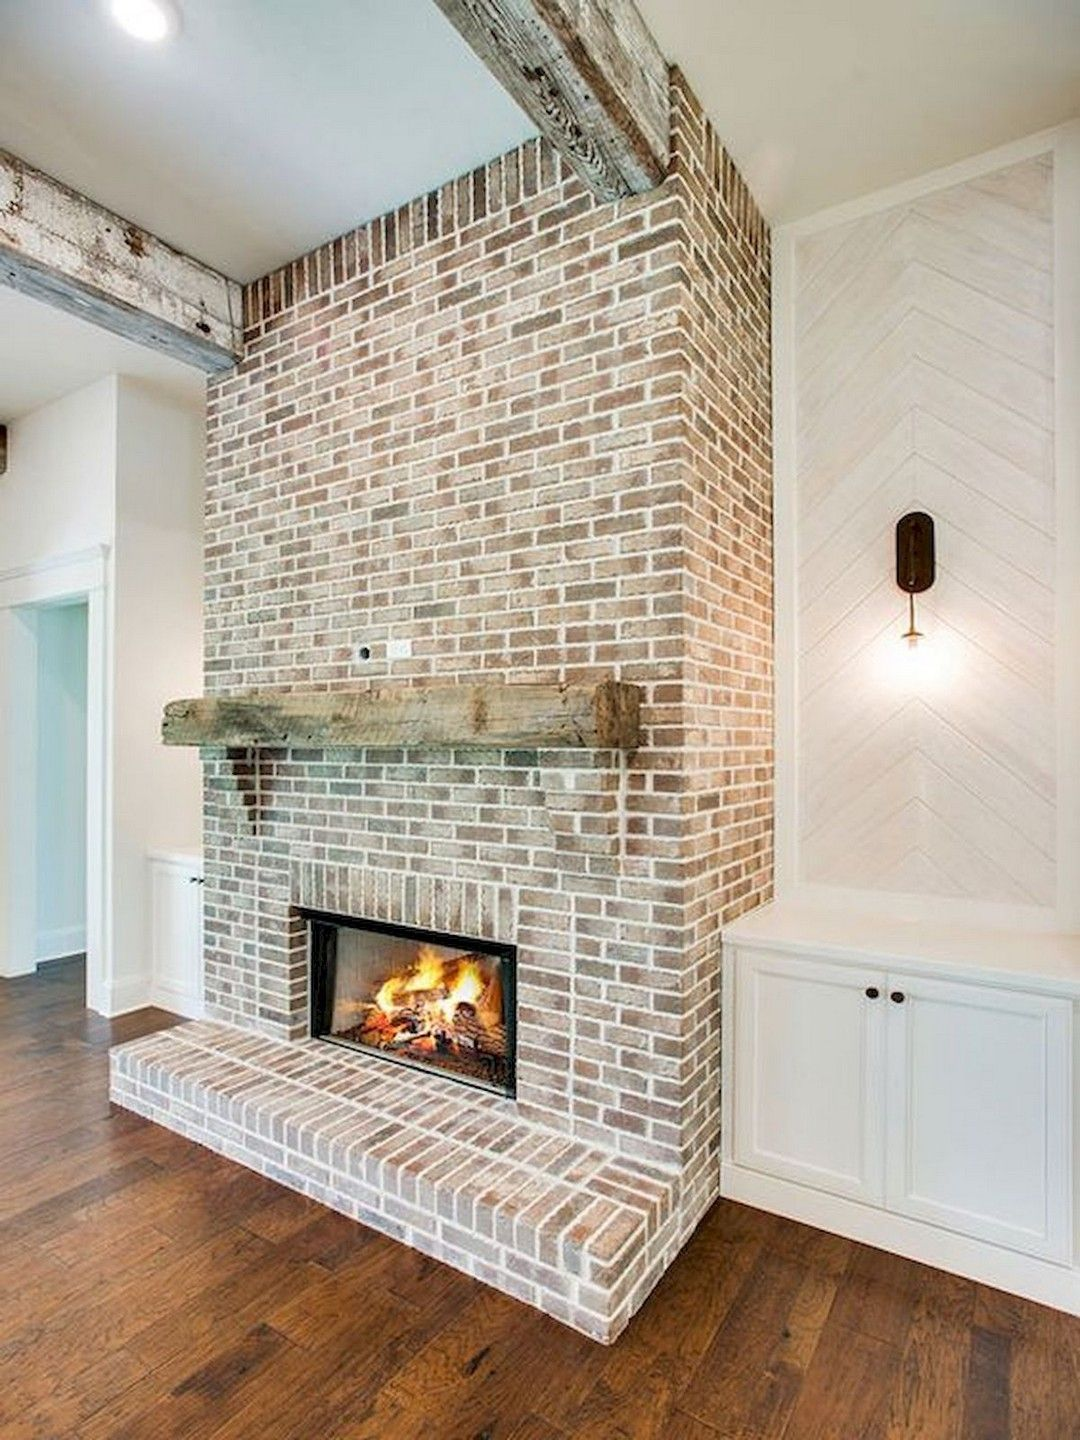 7 tips for buying an outdoor fireplace home fireplace